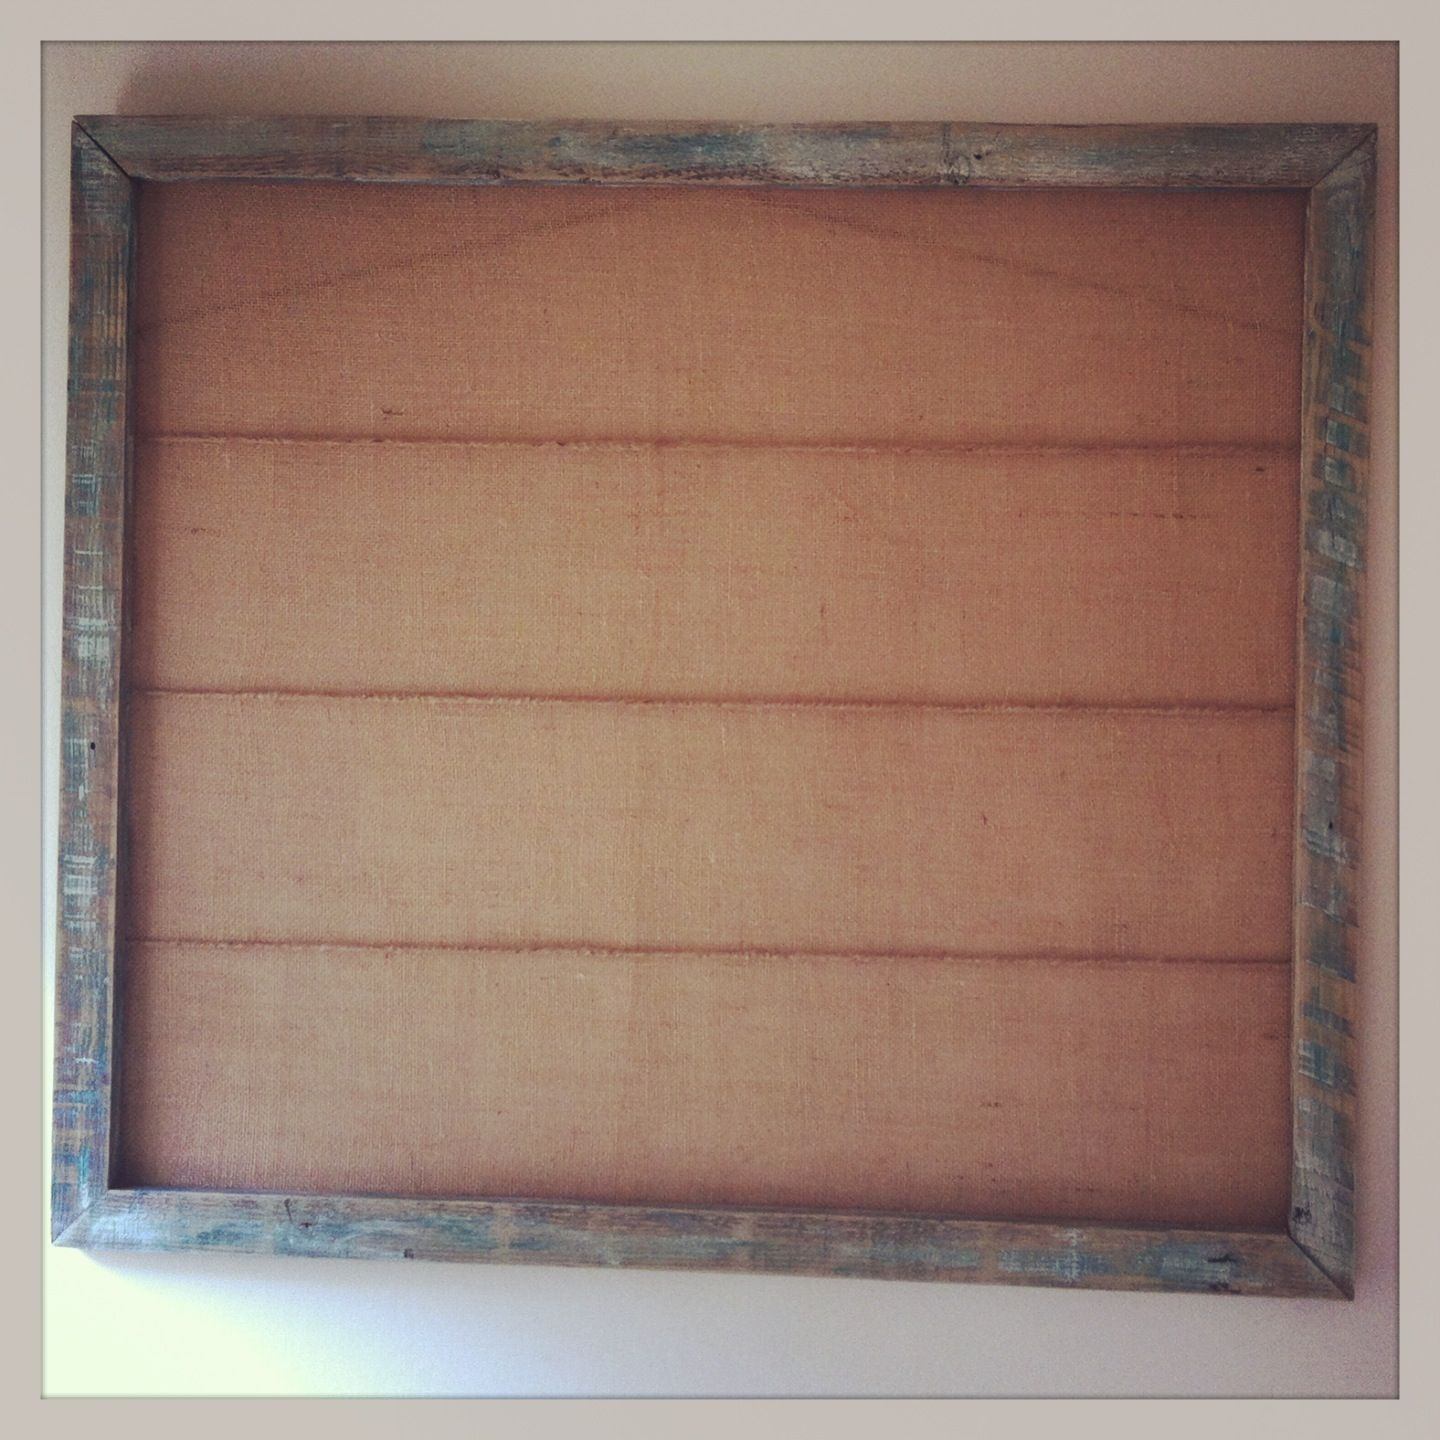 Homemade rustic picture frame - wooden frame sanded down, painted ...